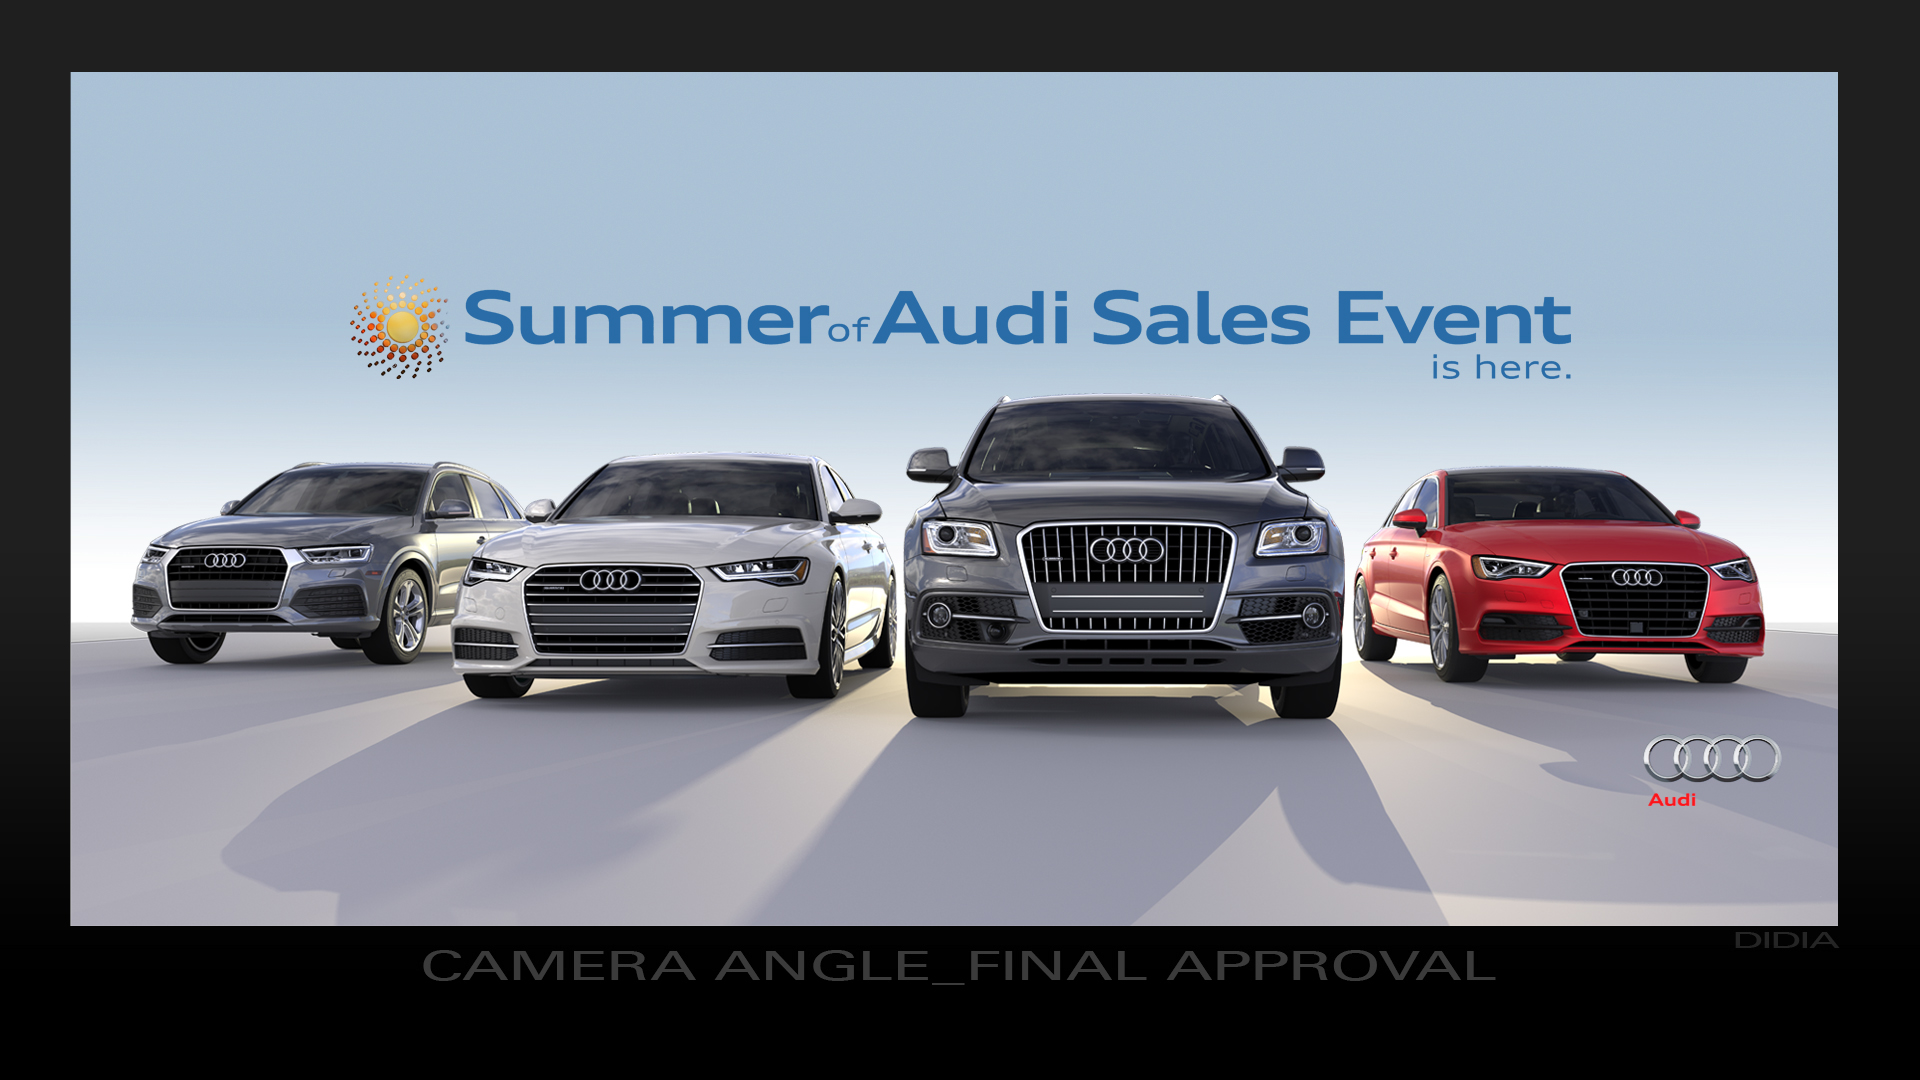 to on end exceptional offers is advantage of audi take new aud now perfect the pin select sales event and season reaching its time